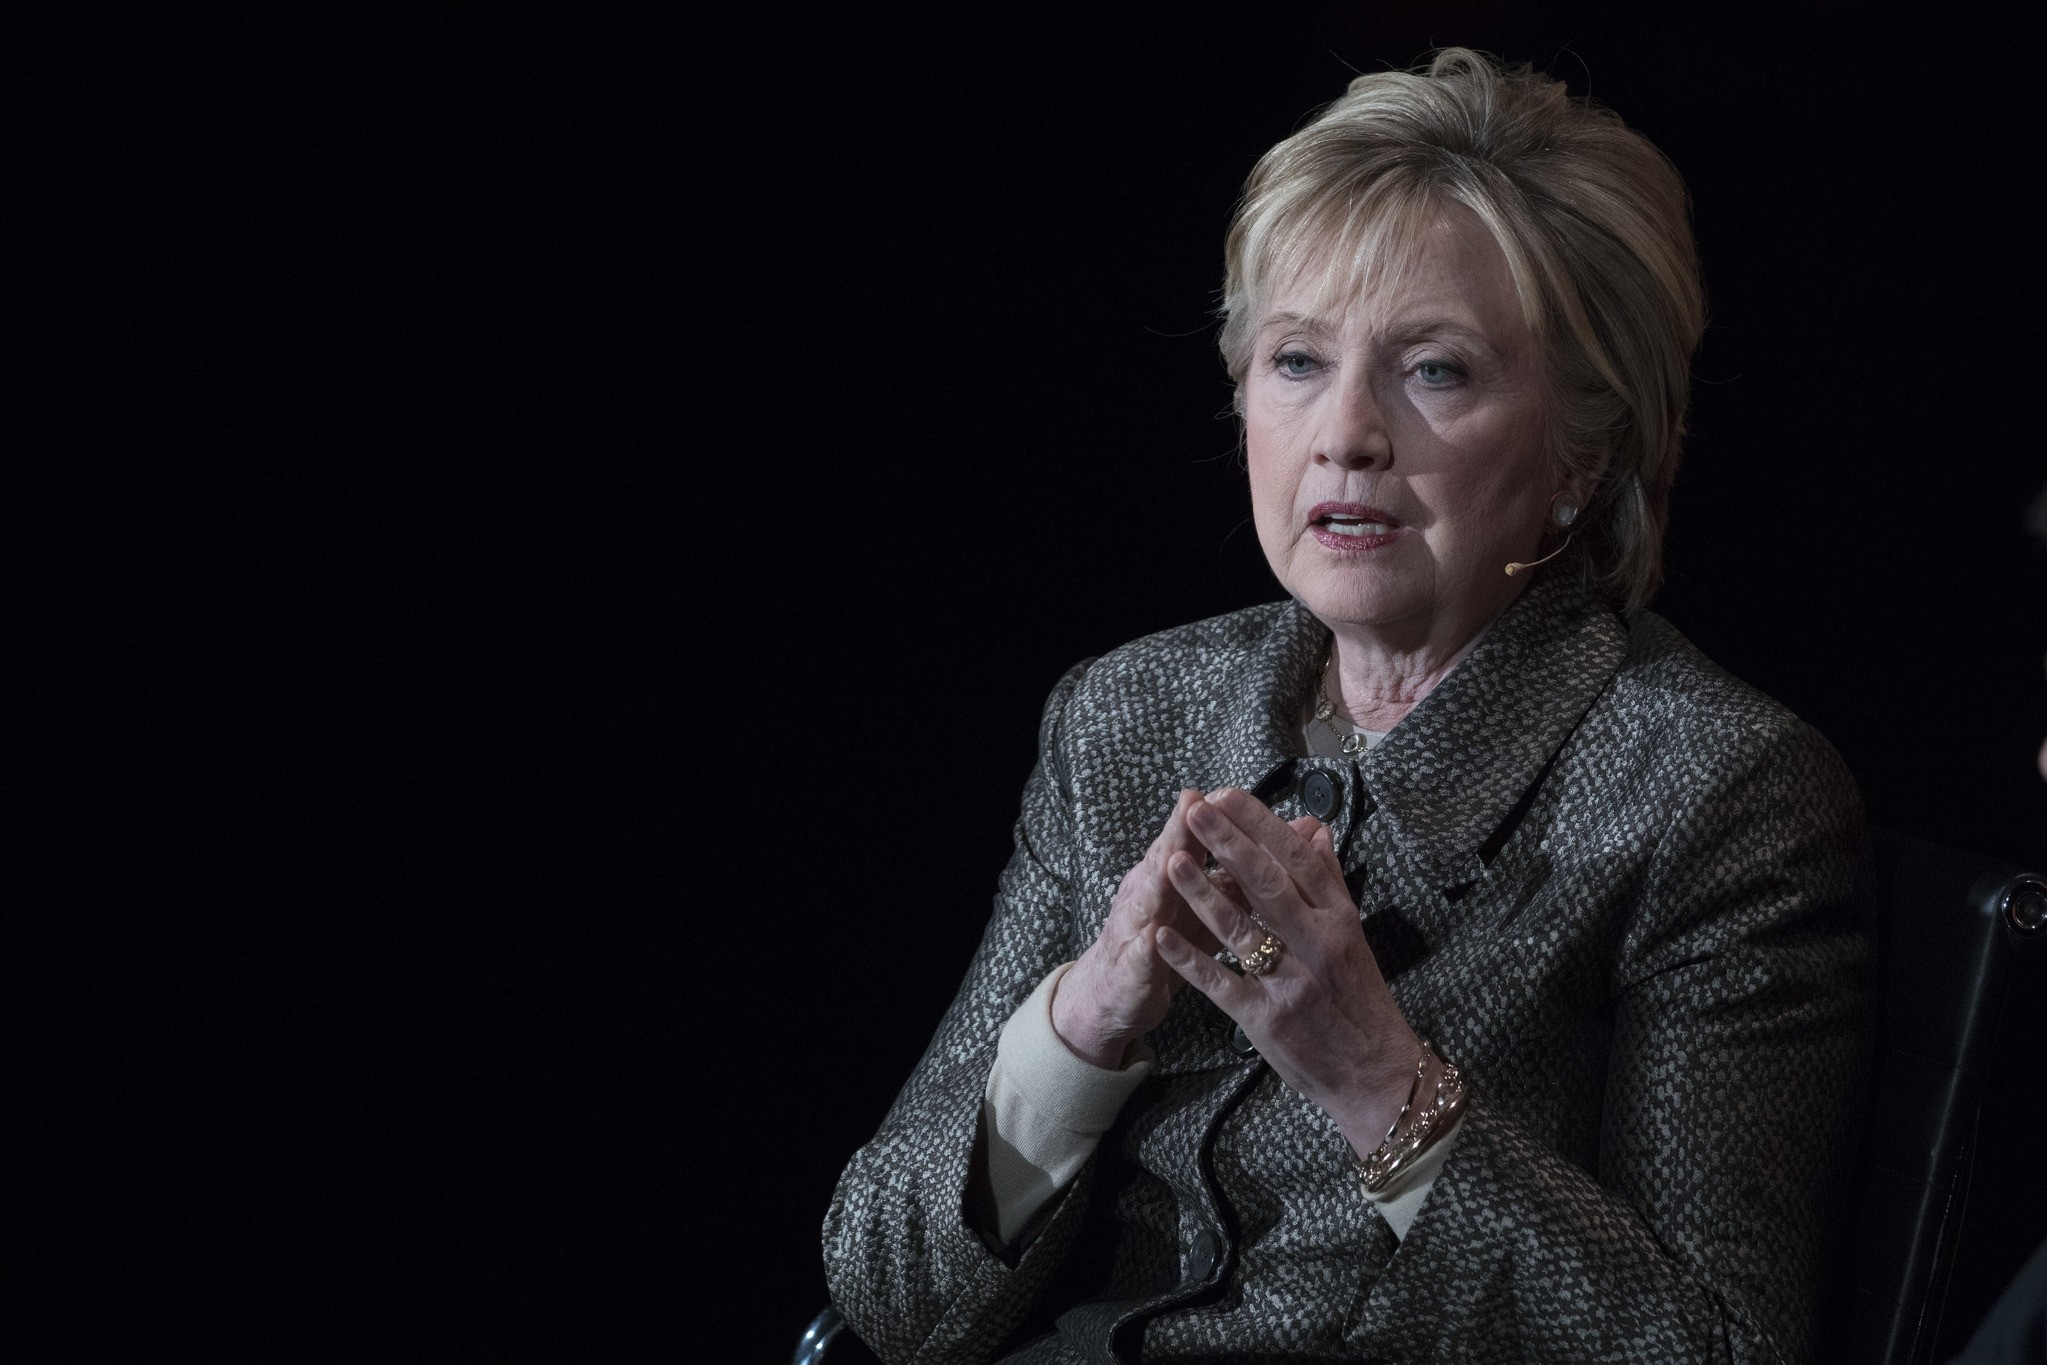 In this photo taken April 6, 2017, former Secretary of State Hillary Clinton speaks in New York. (AP Photo)